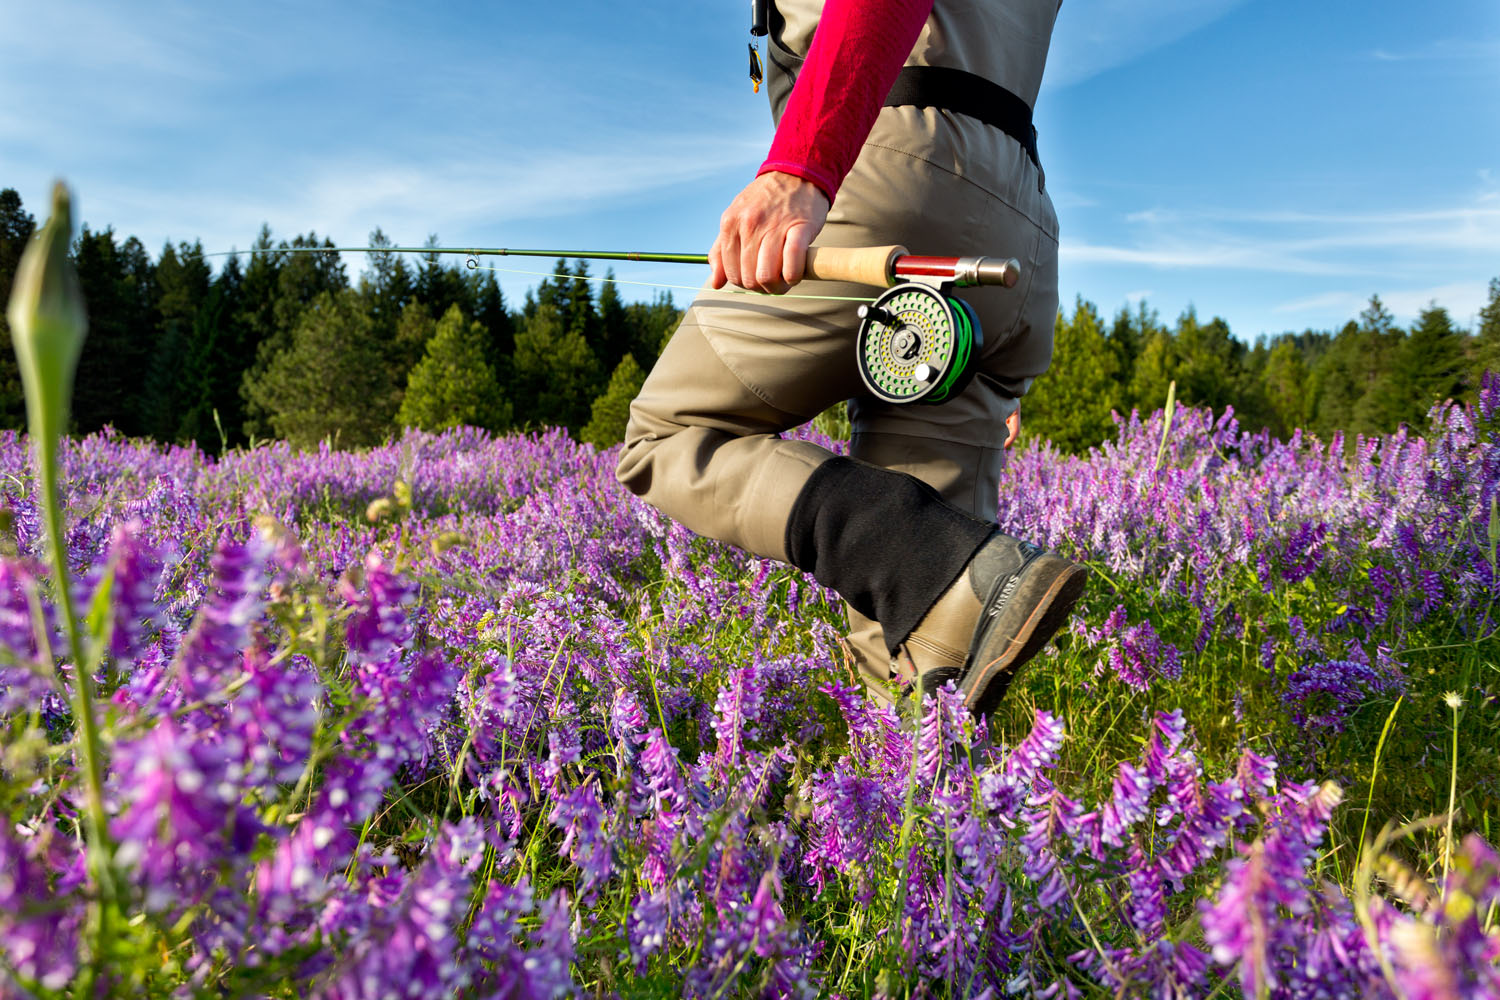 Lifestyle: Kathleen Hasenoehrl walking through a field of wildflowers on her way to fly fish the Yakima River at sunset, Central Cascades, Washington